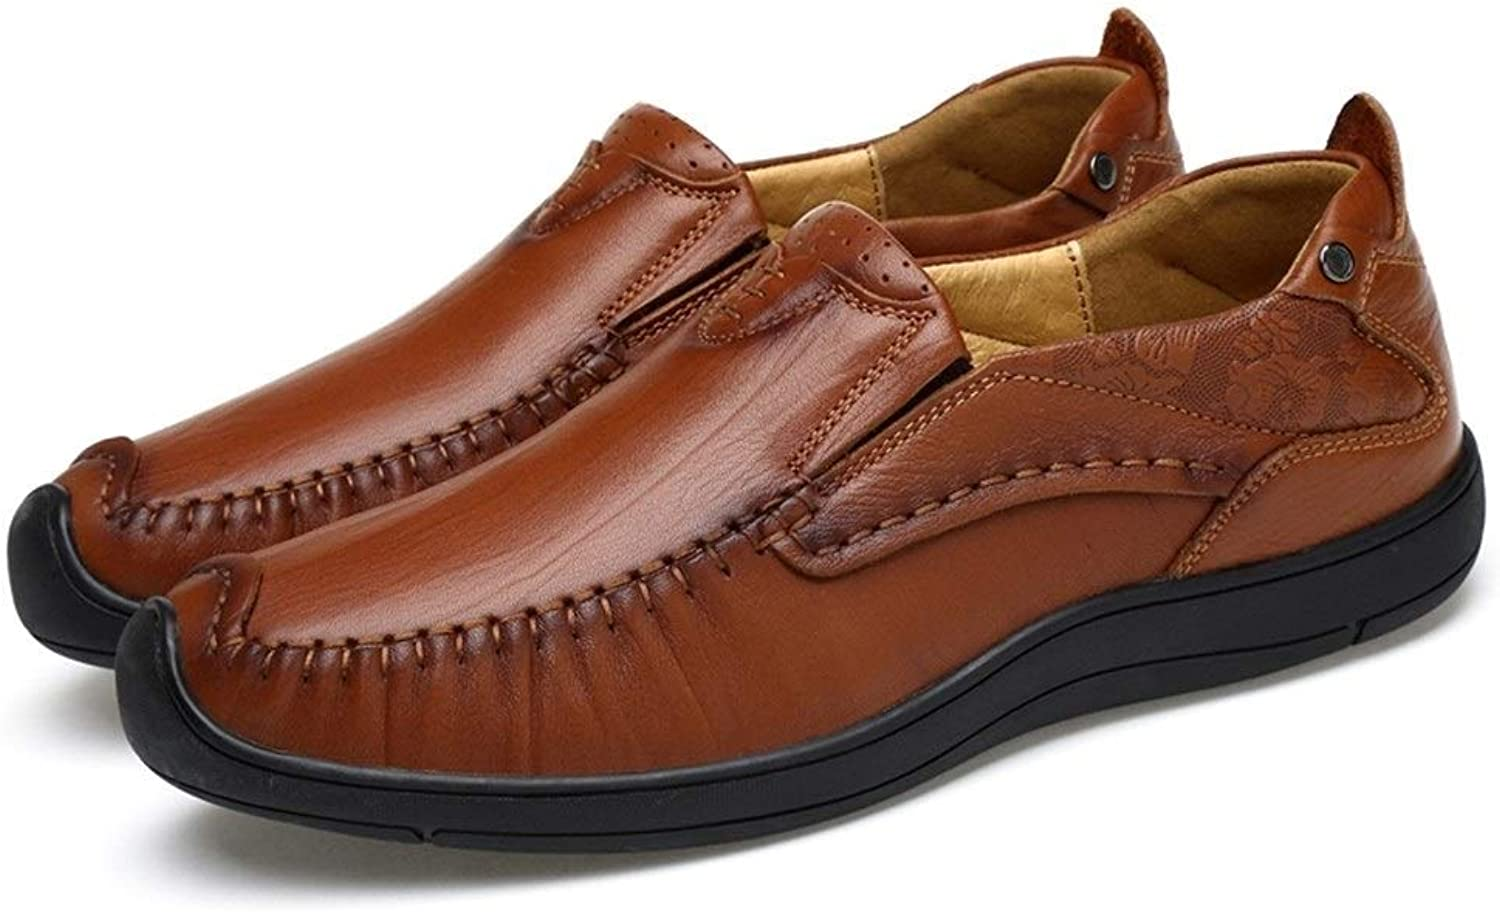 Drivskor för män Genuine läder Business Dress Loafers Anti -Slip -Slip -Slip Flat Slip -on Collision Avoyance (färg  bspringaaa, Storlek  9.5 D (M) US)  noll vinst